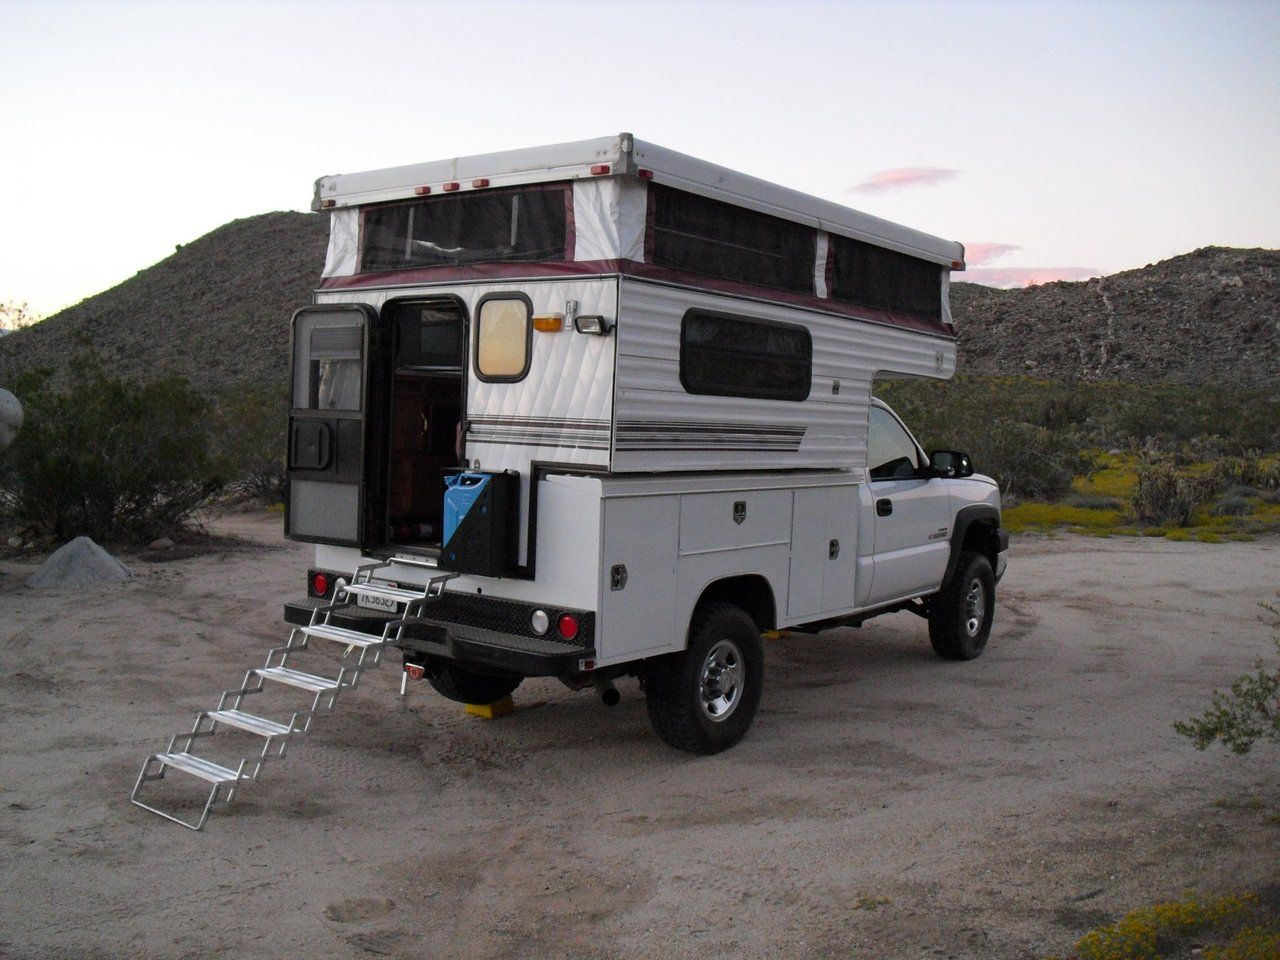 Motorhome With Images Truck Canopy Camping Cabover Camper